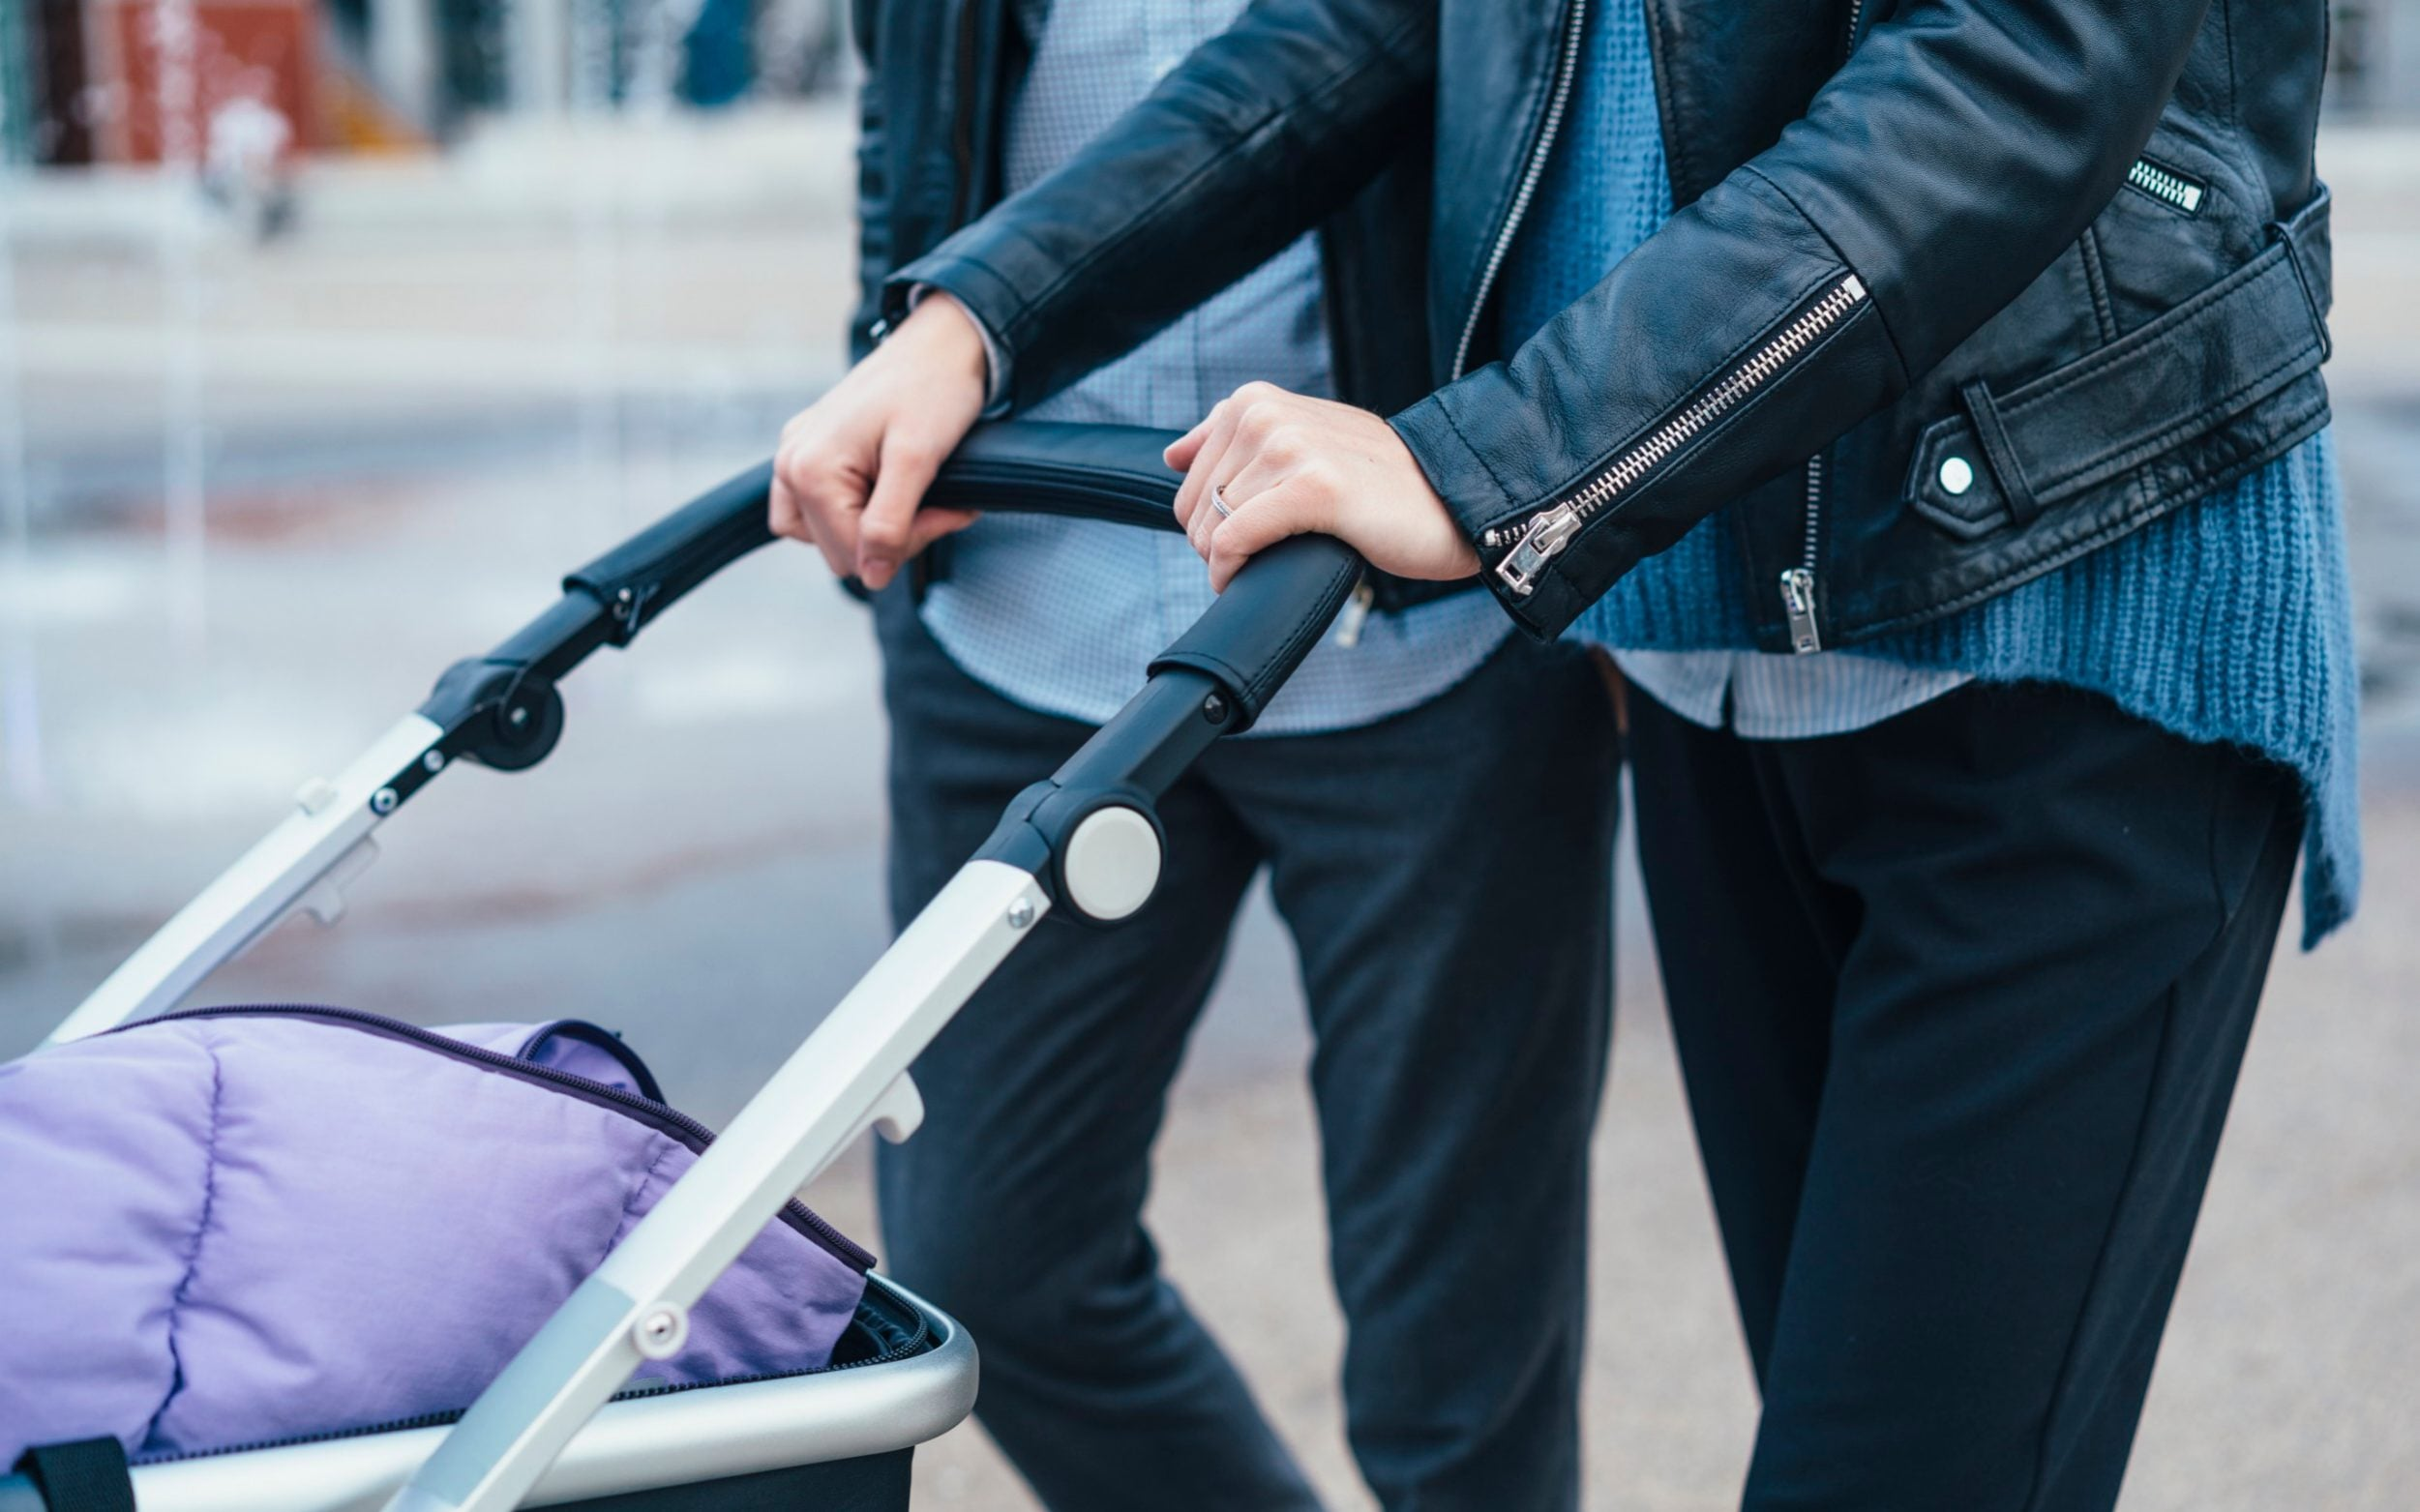 Baby Pram Stroller Pushchair + Car Seat Carrycot Buggy Travel System 10 Of The Best Prams Buggies And Pushchairs According To